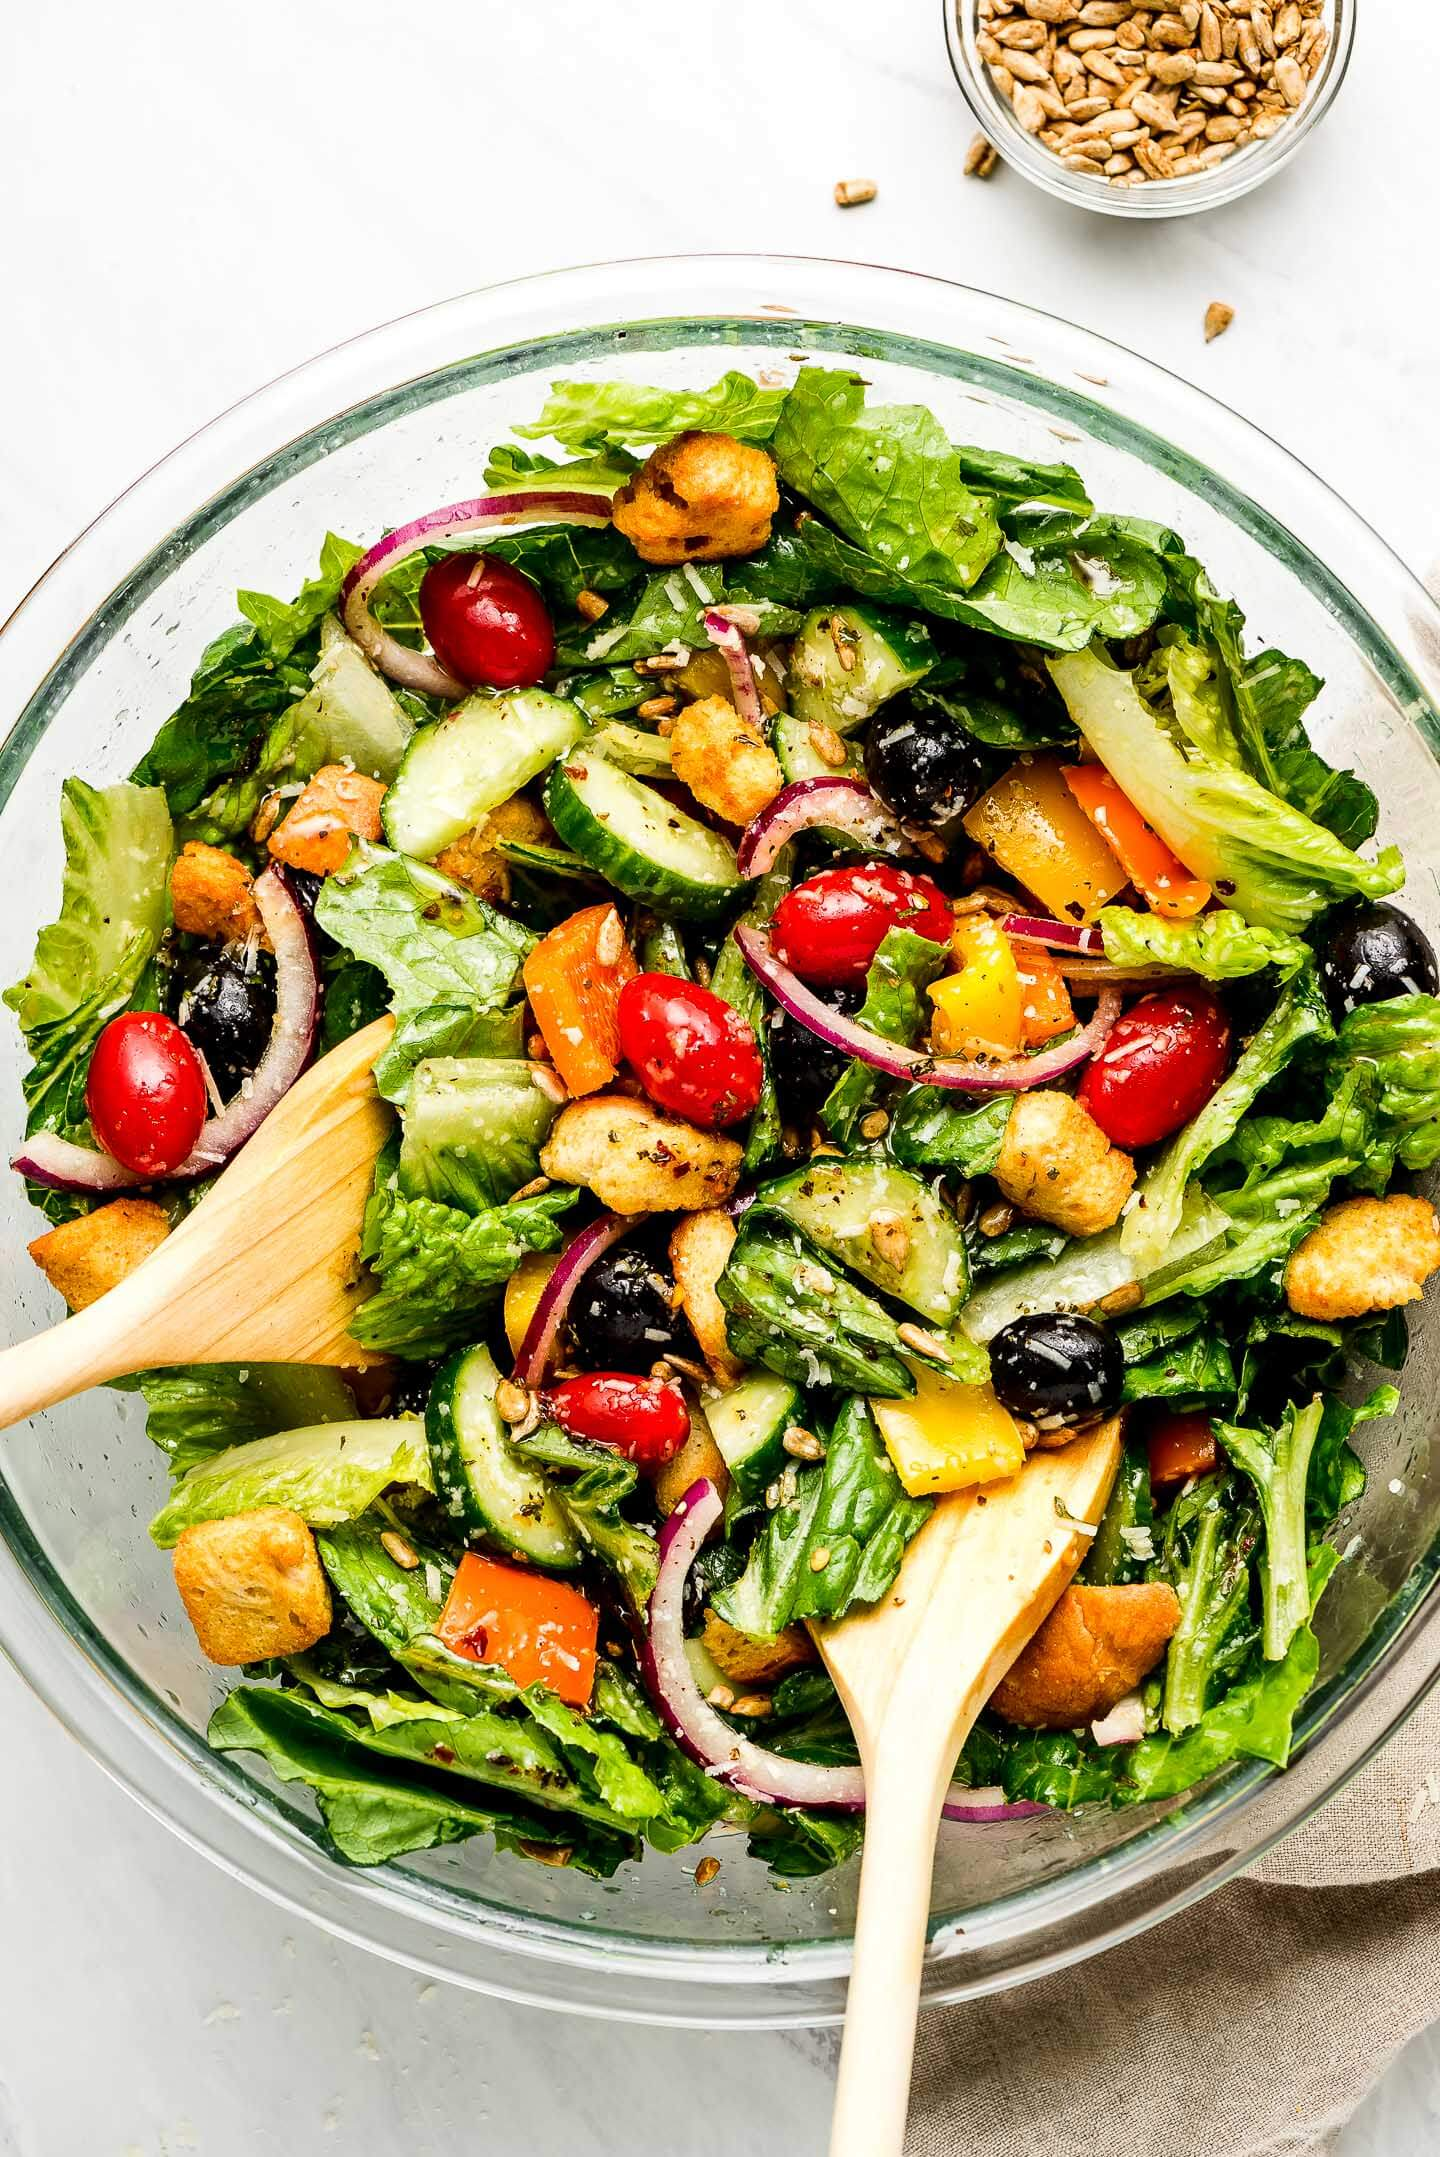 A large bowl of tossed salad comprised of romaine lettuce, olives, cucumbers, peppers, tomatoes, onions, croutons, sunflower seeds, and parmesan cheese.